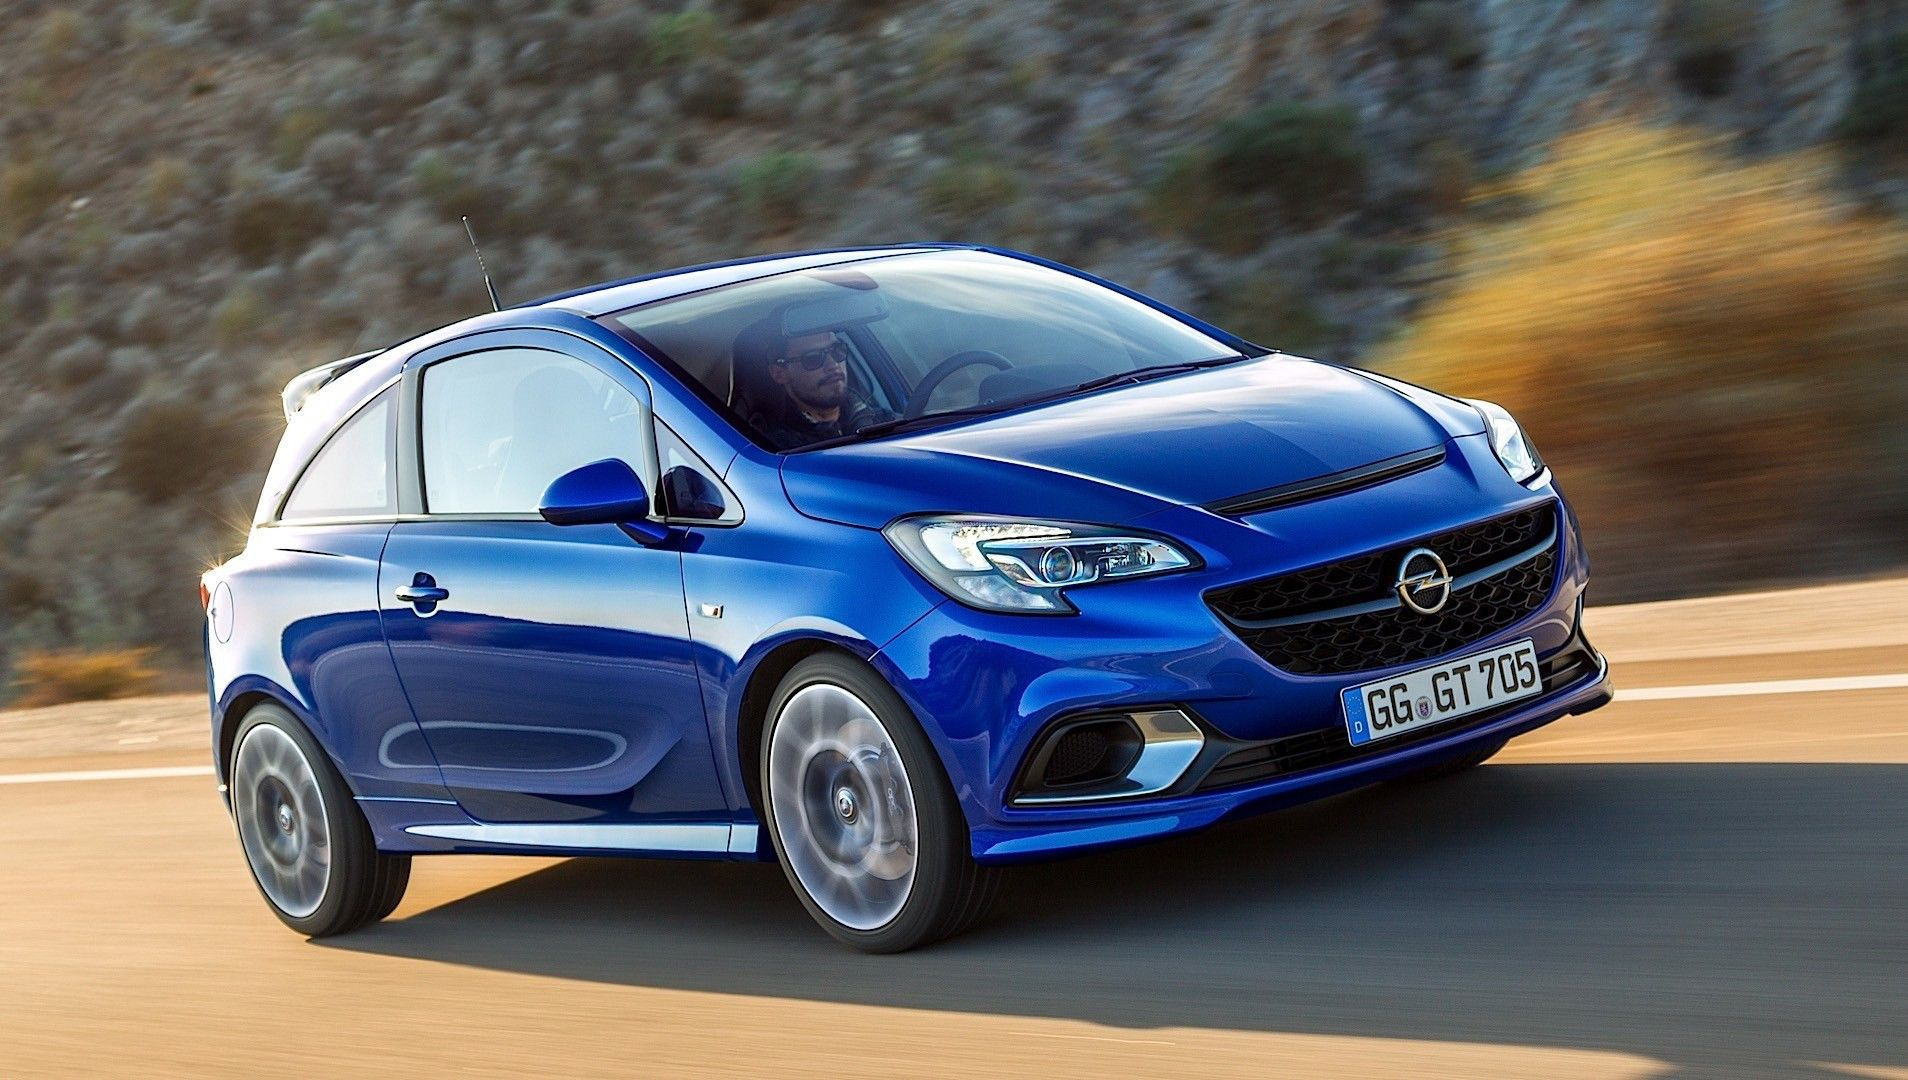 2019 Opel Astra Opc Check More At Http Www Autocarblog Club 2018 02 21 2019 Opel Astra Opc